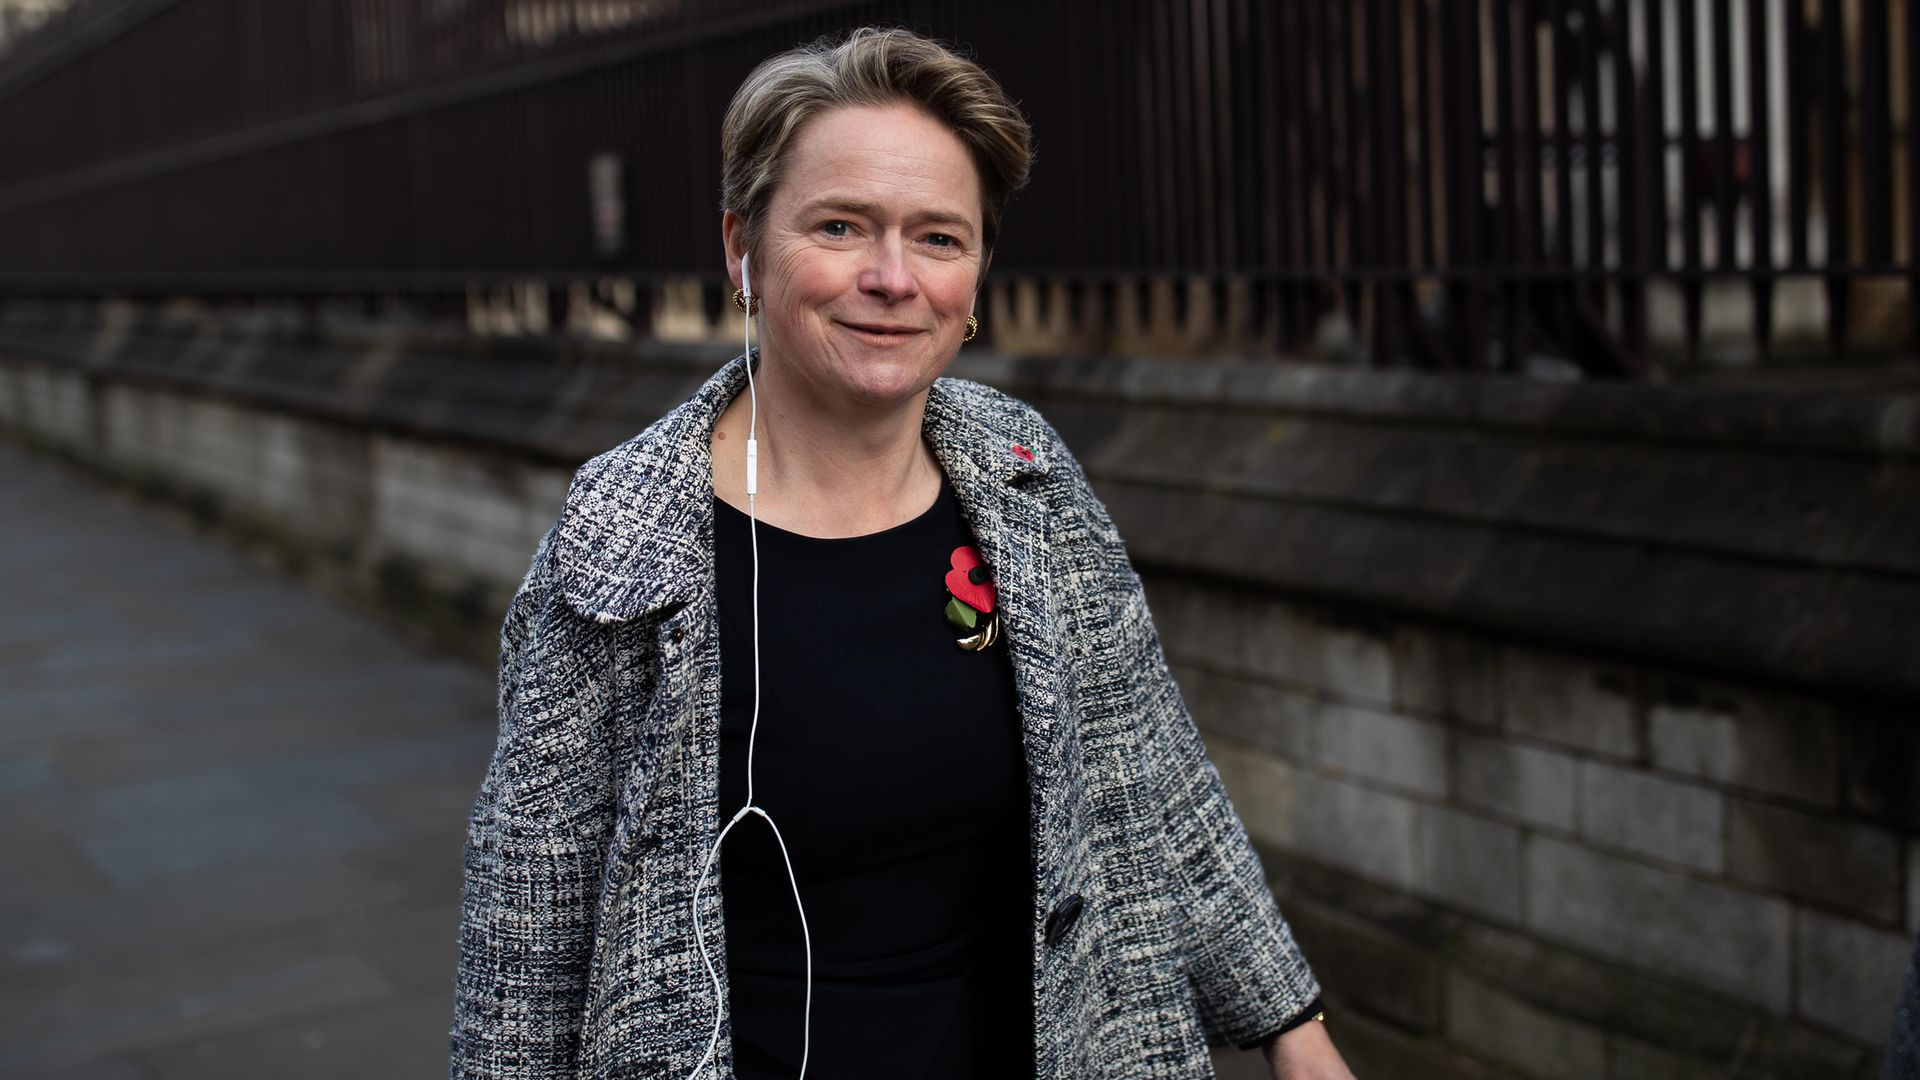 """Baroness Dido Harding, Executive Chair of NHS Test and Trace, in Westminster, London. There is """"no clear evidence"""" the £22 billion Test and Trace scheme contributed to a reduction coronavirus infection levels, a cross-party group of MPs have said - Credit: PA"""